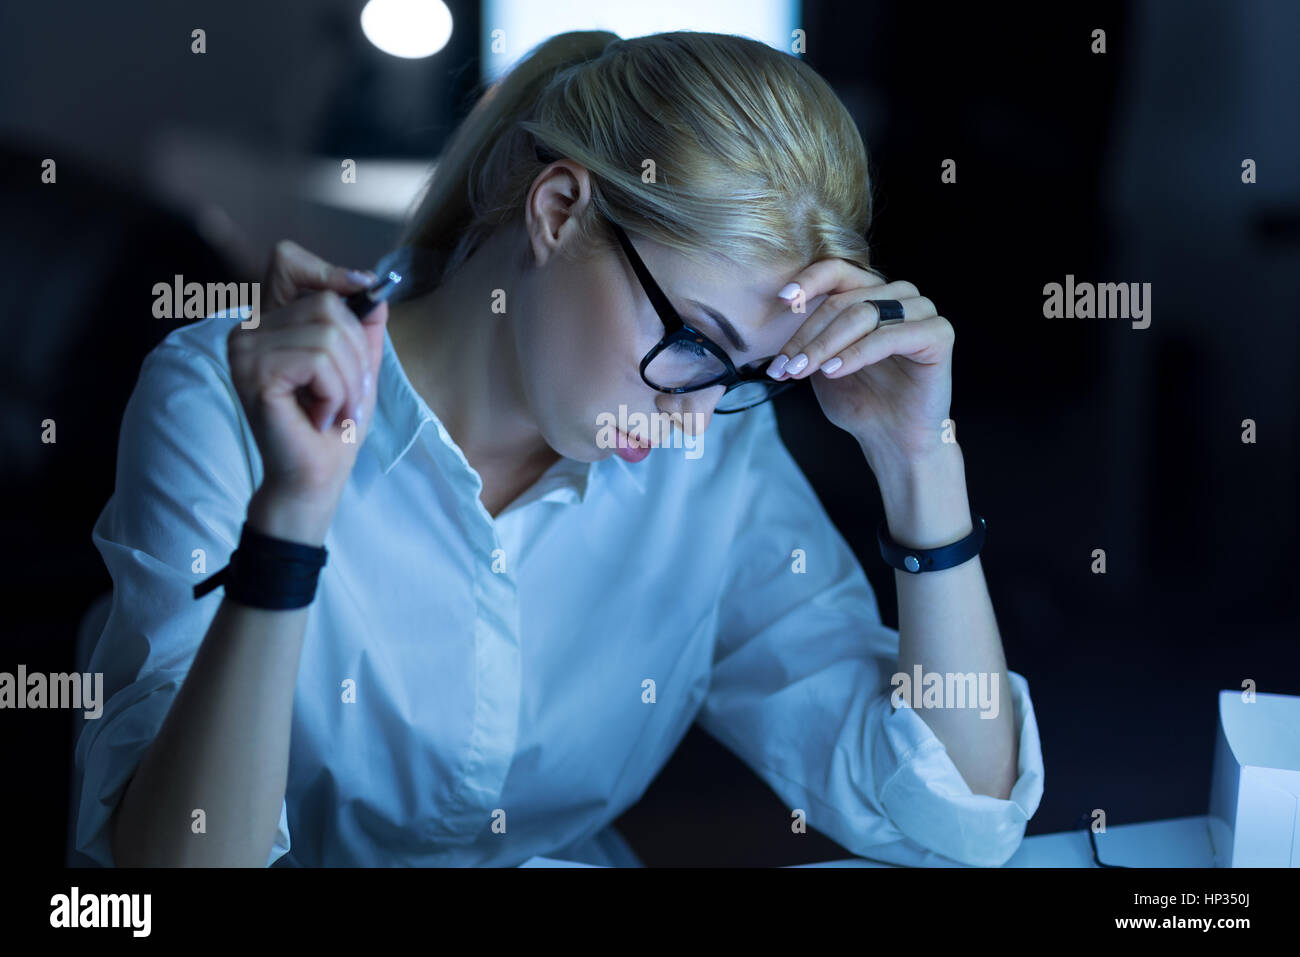 Serious young woman working with papers in the office - Stock Image